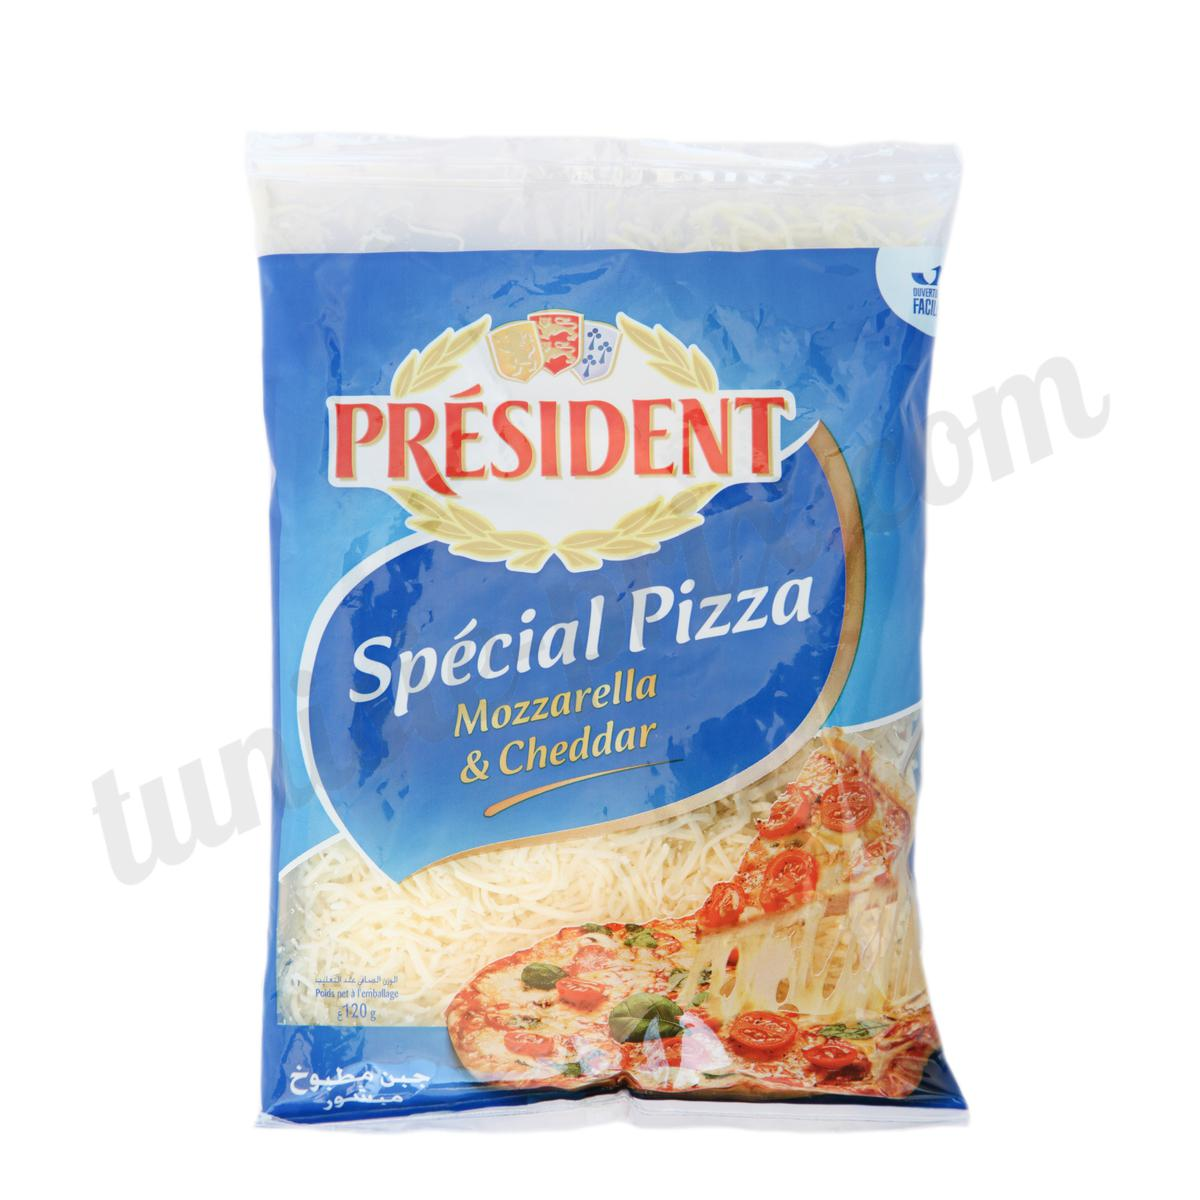 Fromage r p sp cial pizza pr sident 120g tunisie for Fromage en special